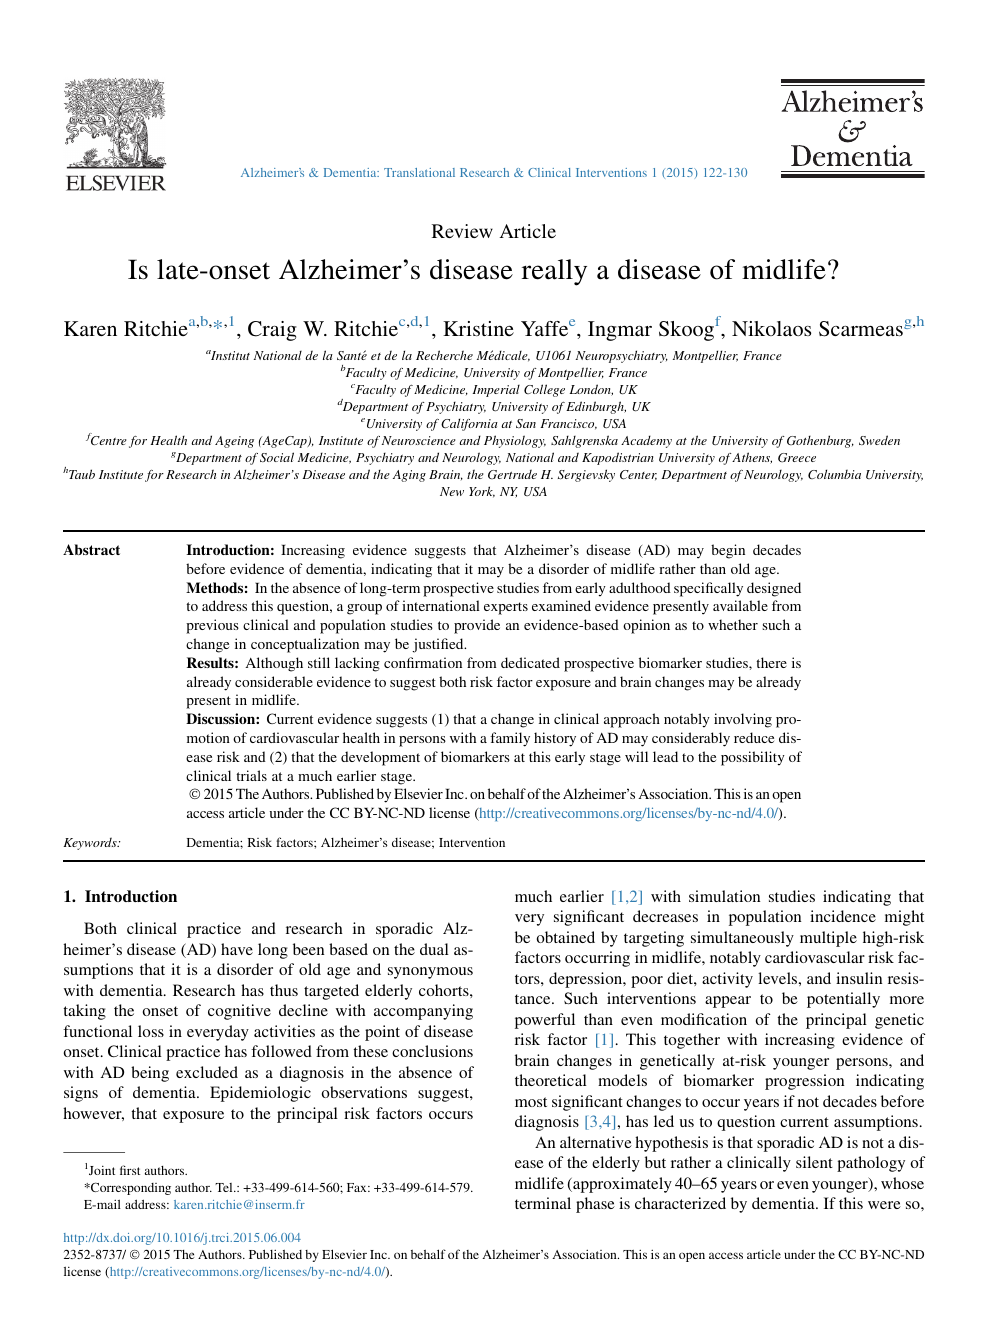 002 Abstract Alzheimers Research Paper Exceptional Alzheimer's Full